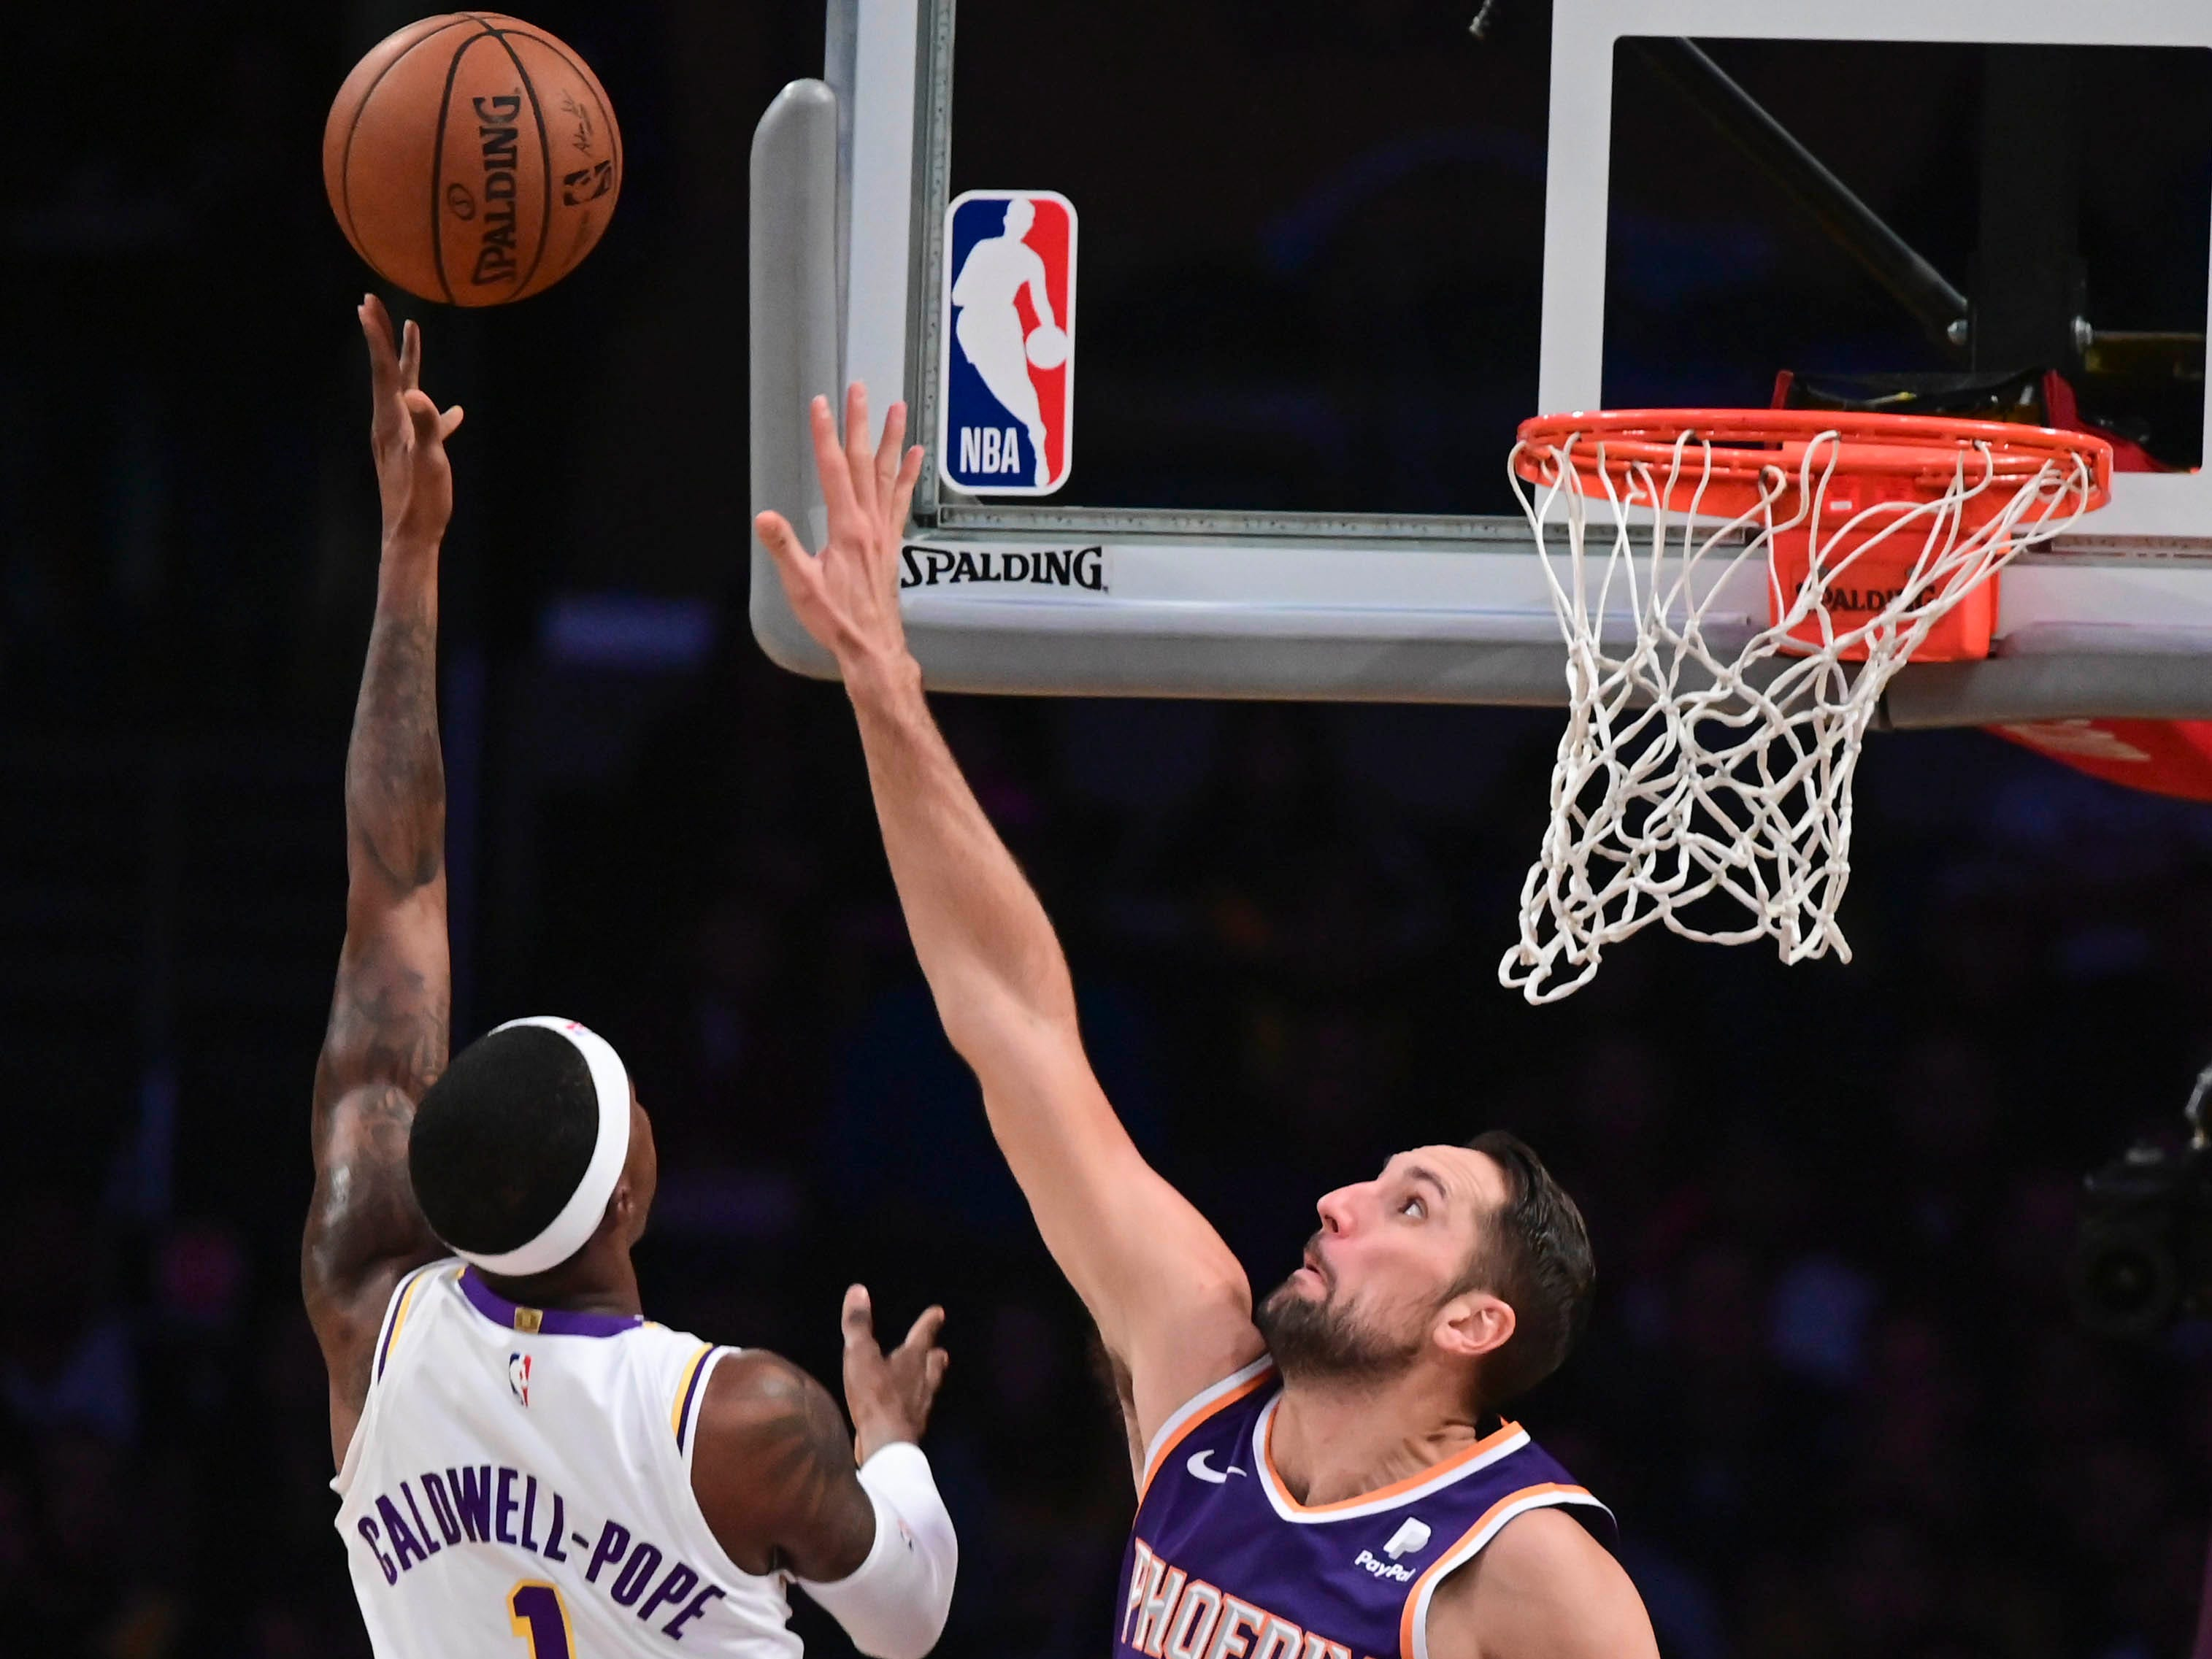 Dec 2, 2018; Los Angeles, CA, USA; Los Angeles Lakers guard Kentavious Caldwell-Pope (1) puts up a shot over Phoenix Suns forward Ryan Anderson (15) during the second quarter at Staples Center. Mandatory Credit: Robert Hanashiro-USA TODAY Sports